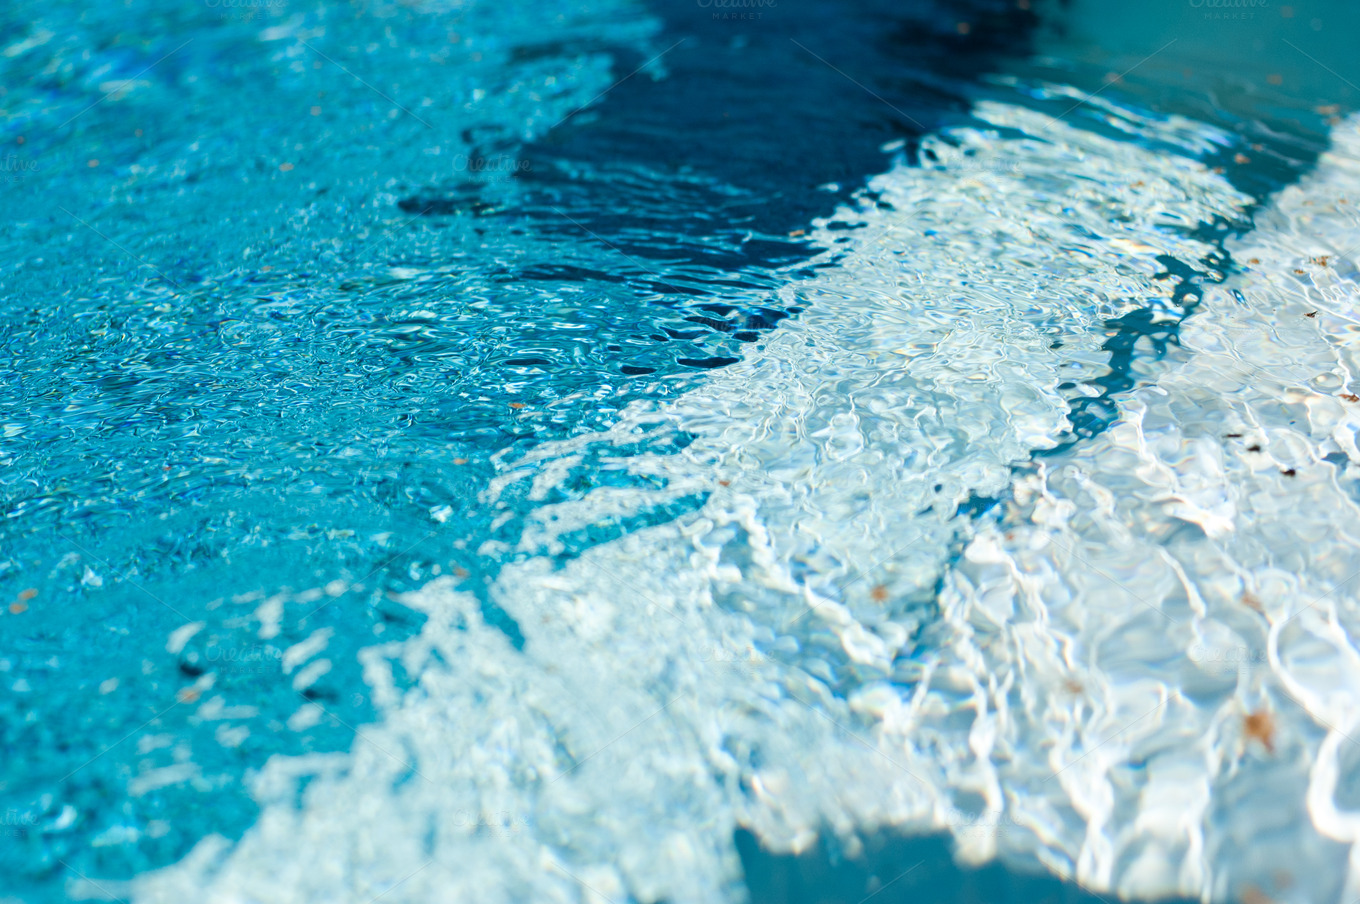 You can ensure your pool water is safe and sanitary through salt chlorination.